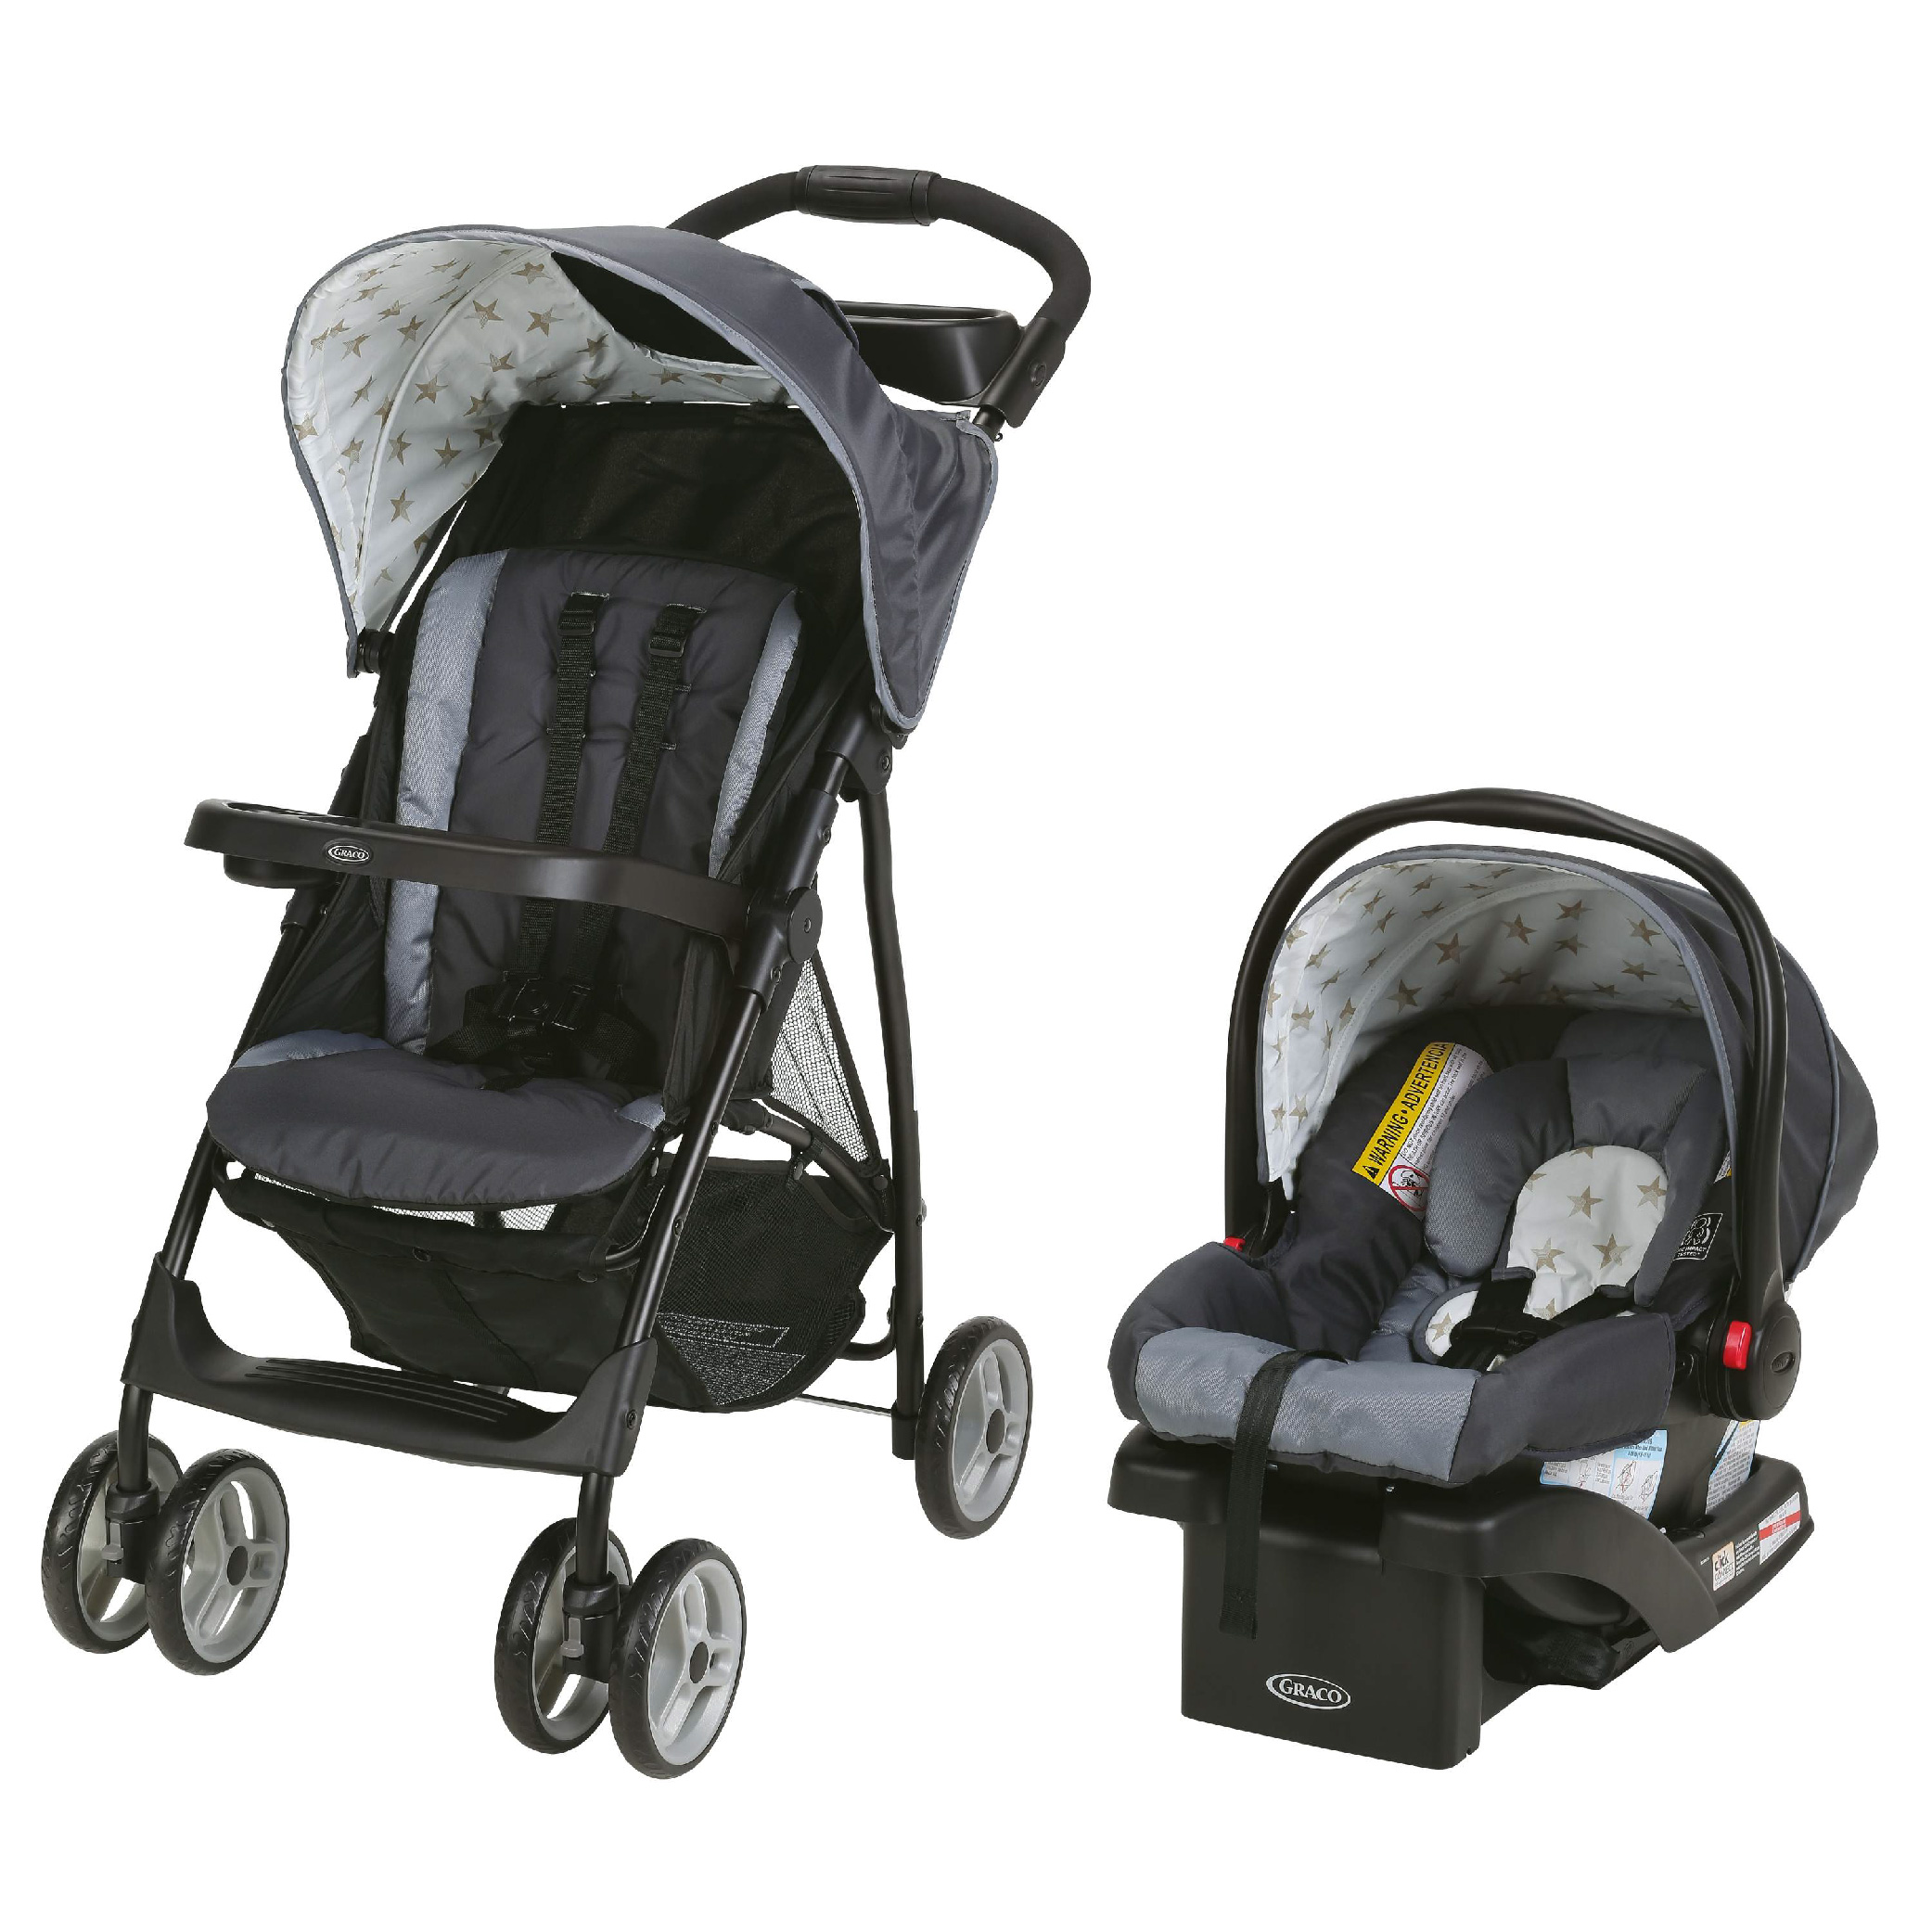 Lot 215_Graco Literider LX Travel System-Brilnt-1